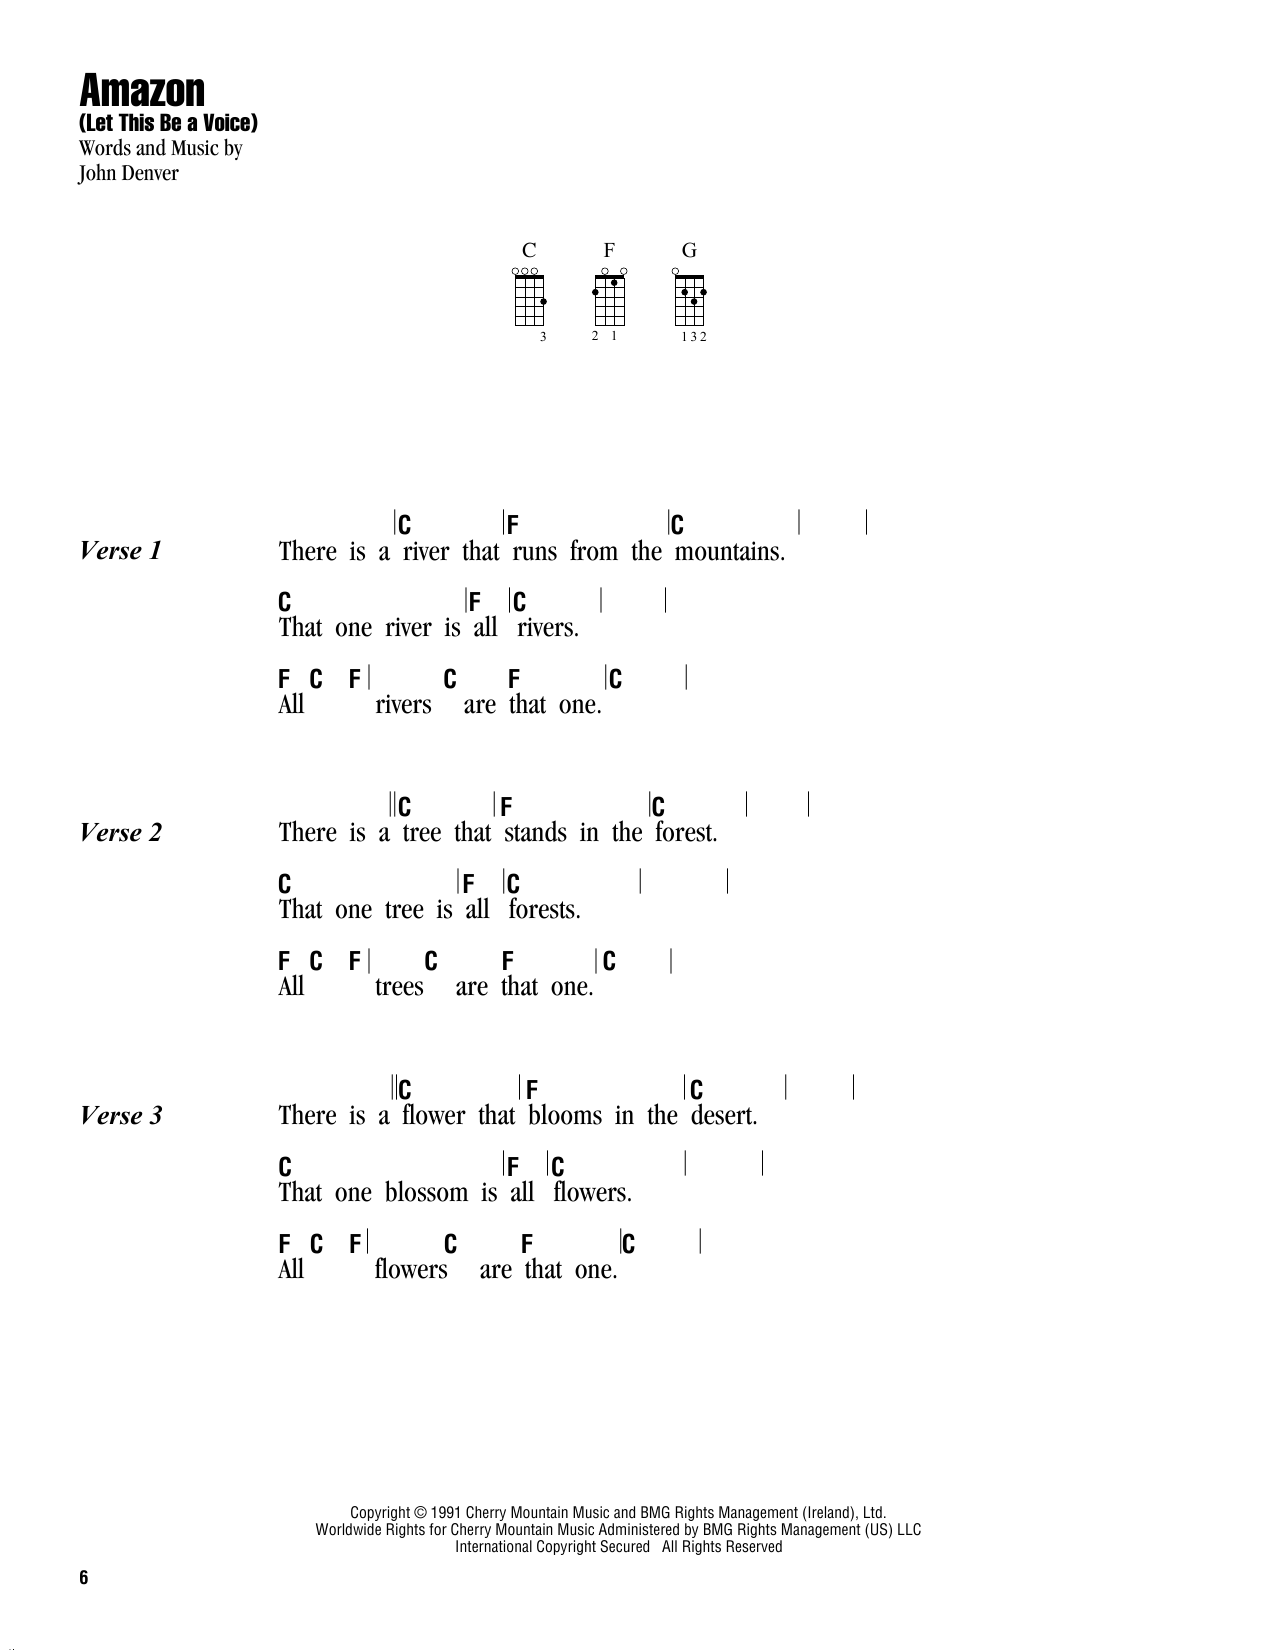 Amazon (Let This Be A Voice) Sheet Music